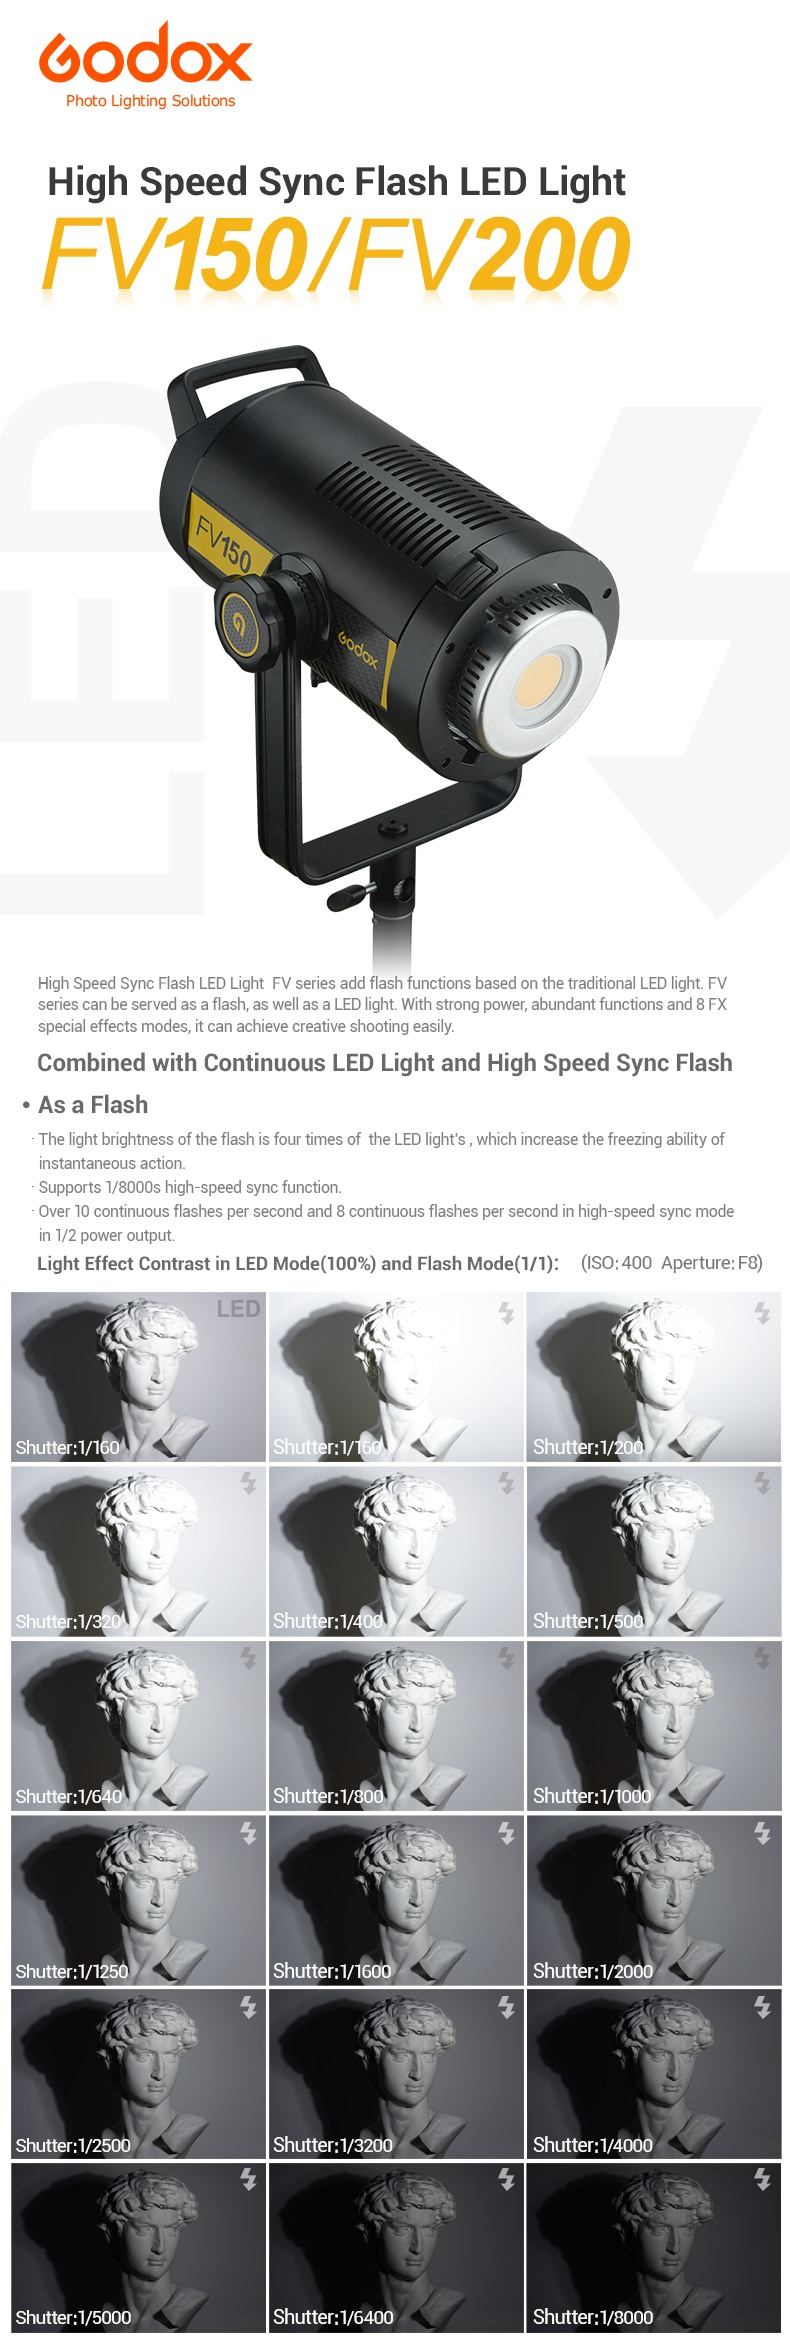 Godox High Speed Sync Flash LED Light FV150/FV200 As a Flash As a LED Light